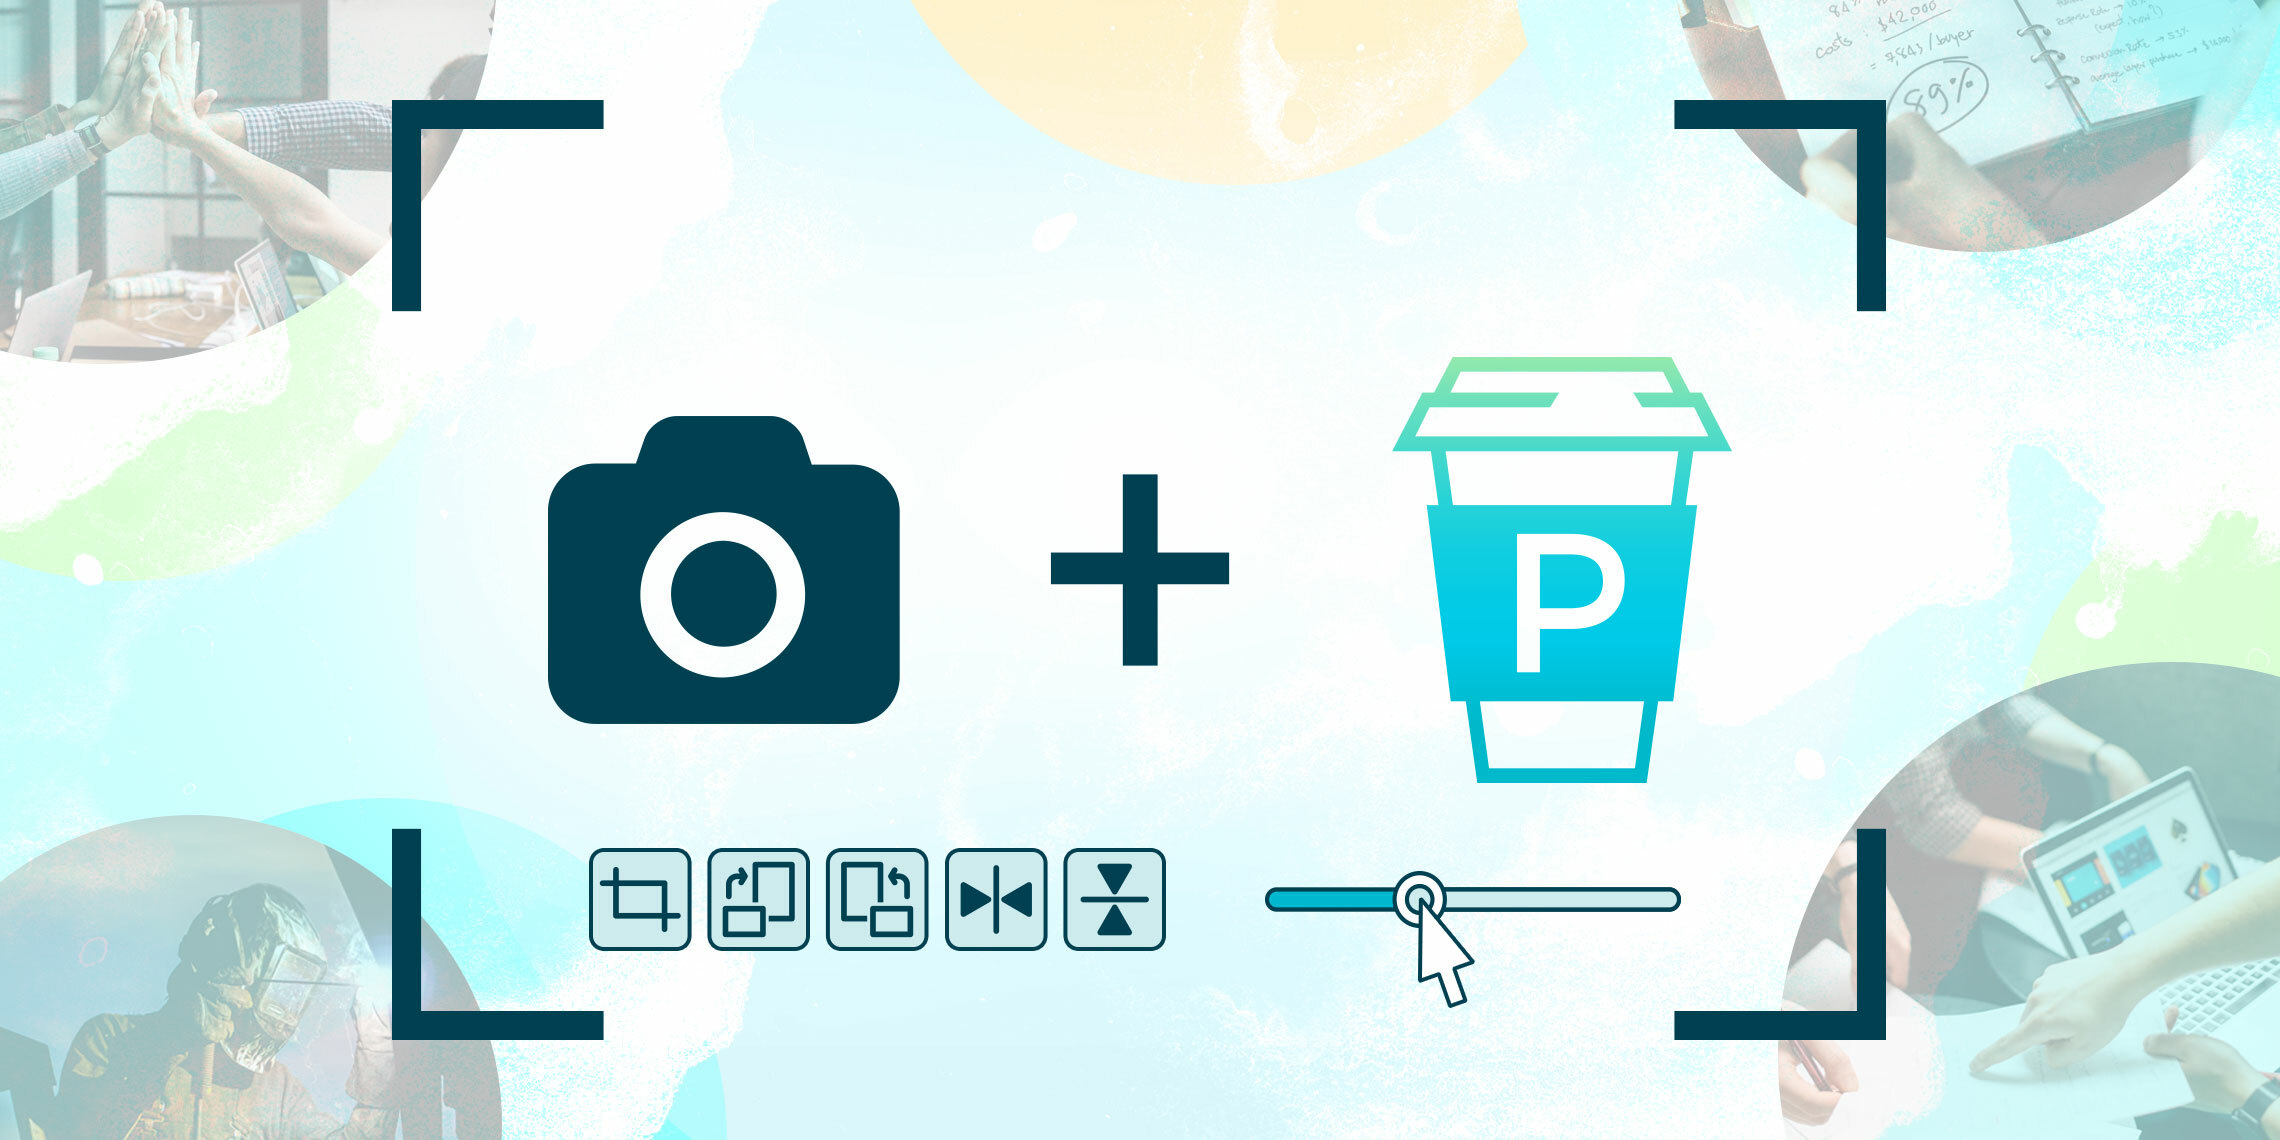 proposify image integration with unsplash photo editor cropping icons